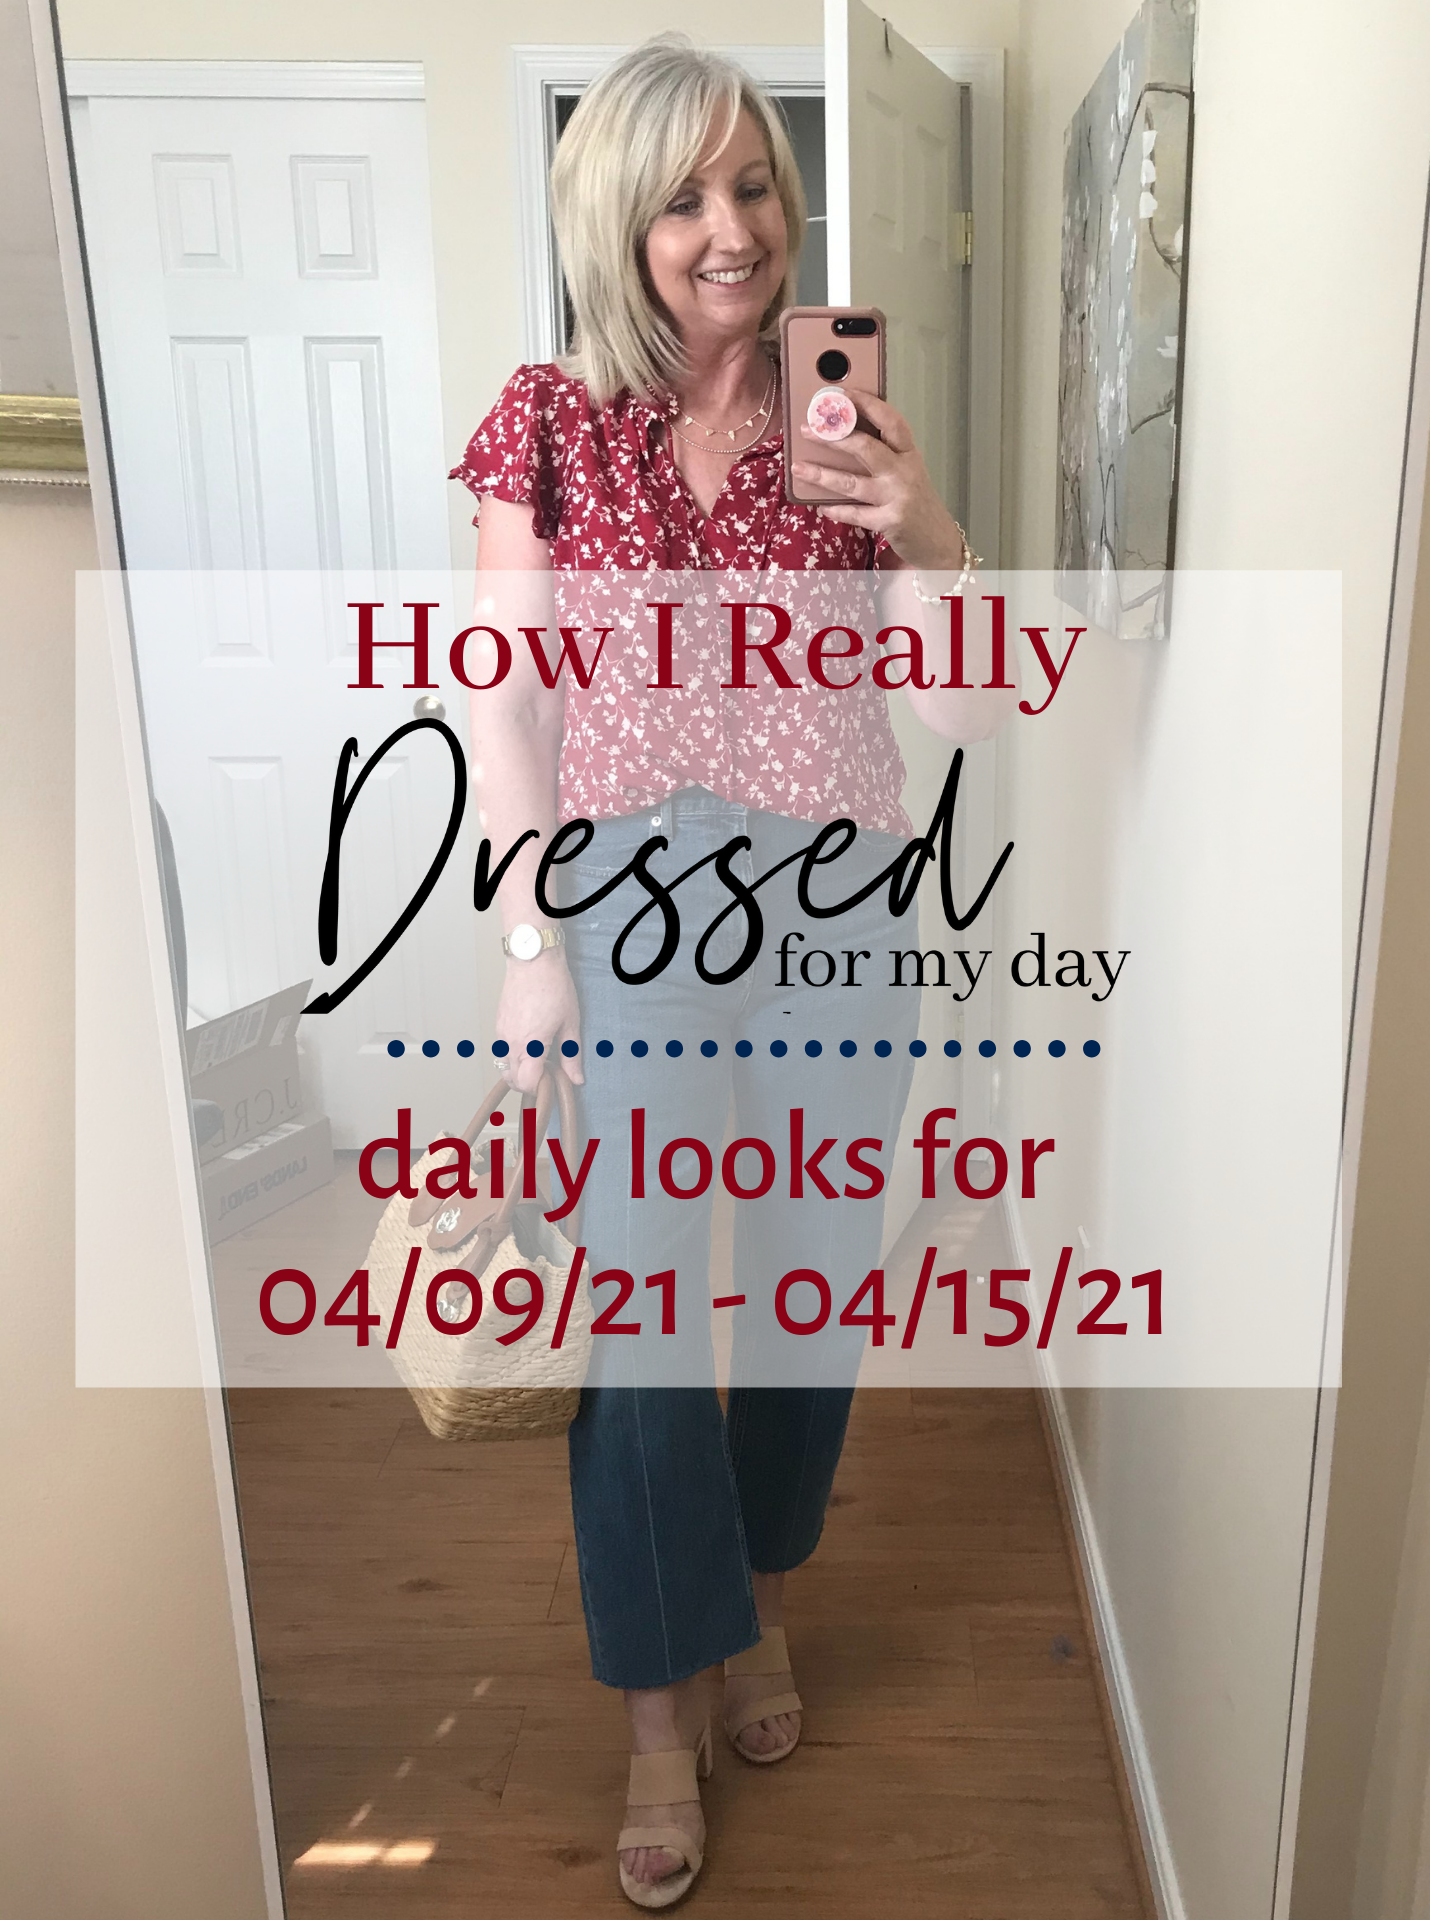 Dressed for My Day 04 09 21 04 15 21